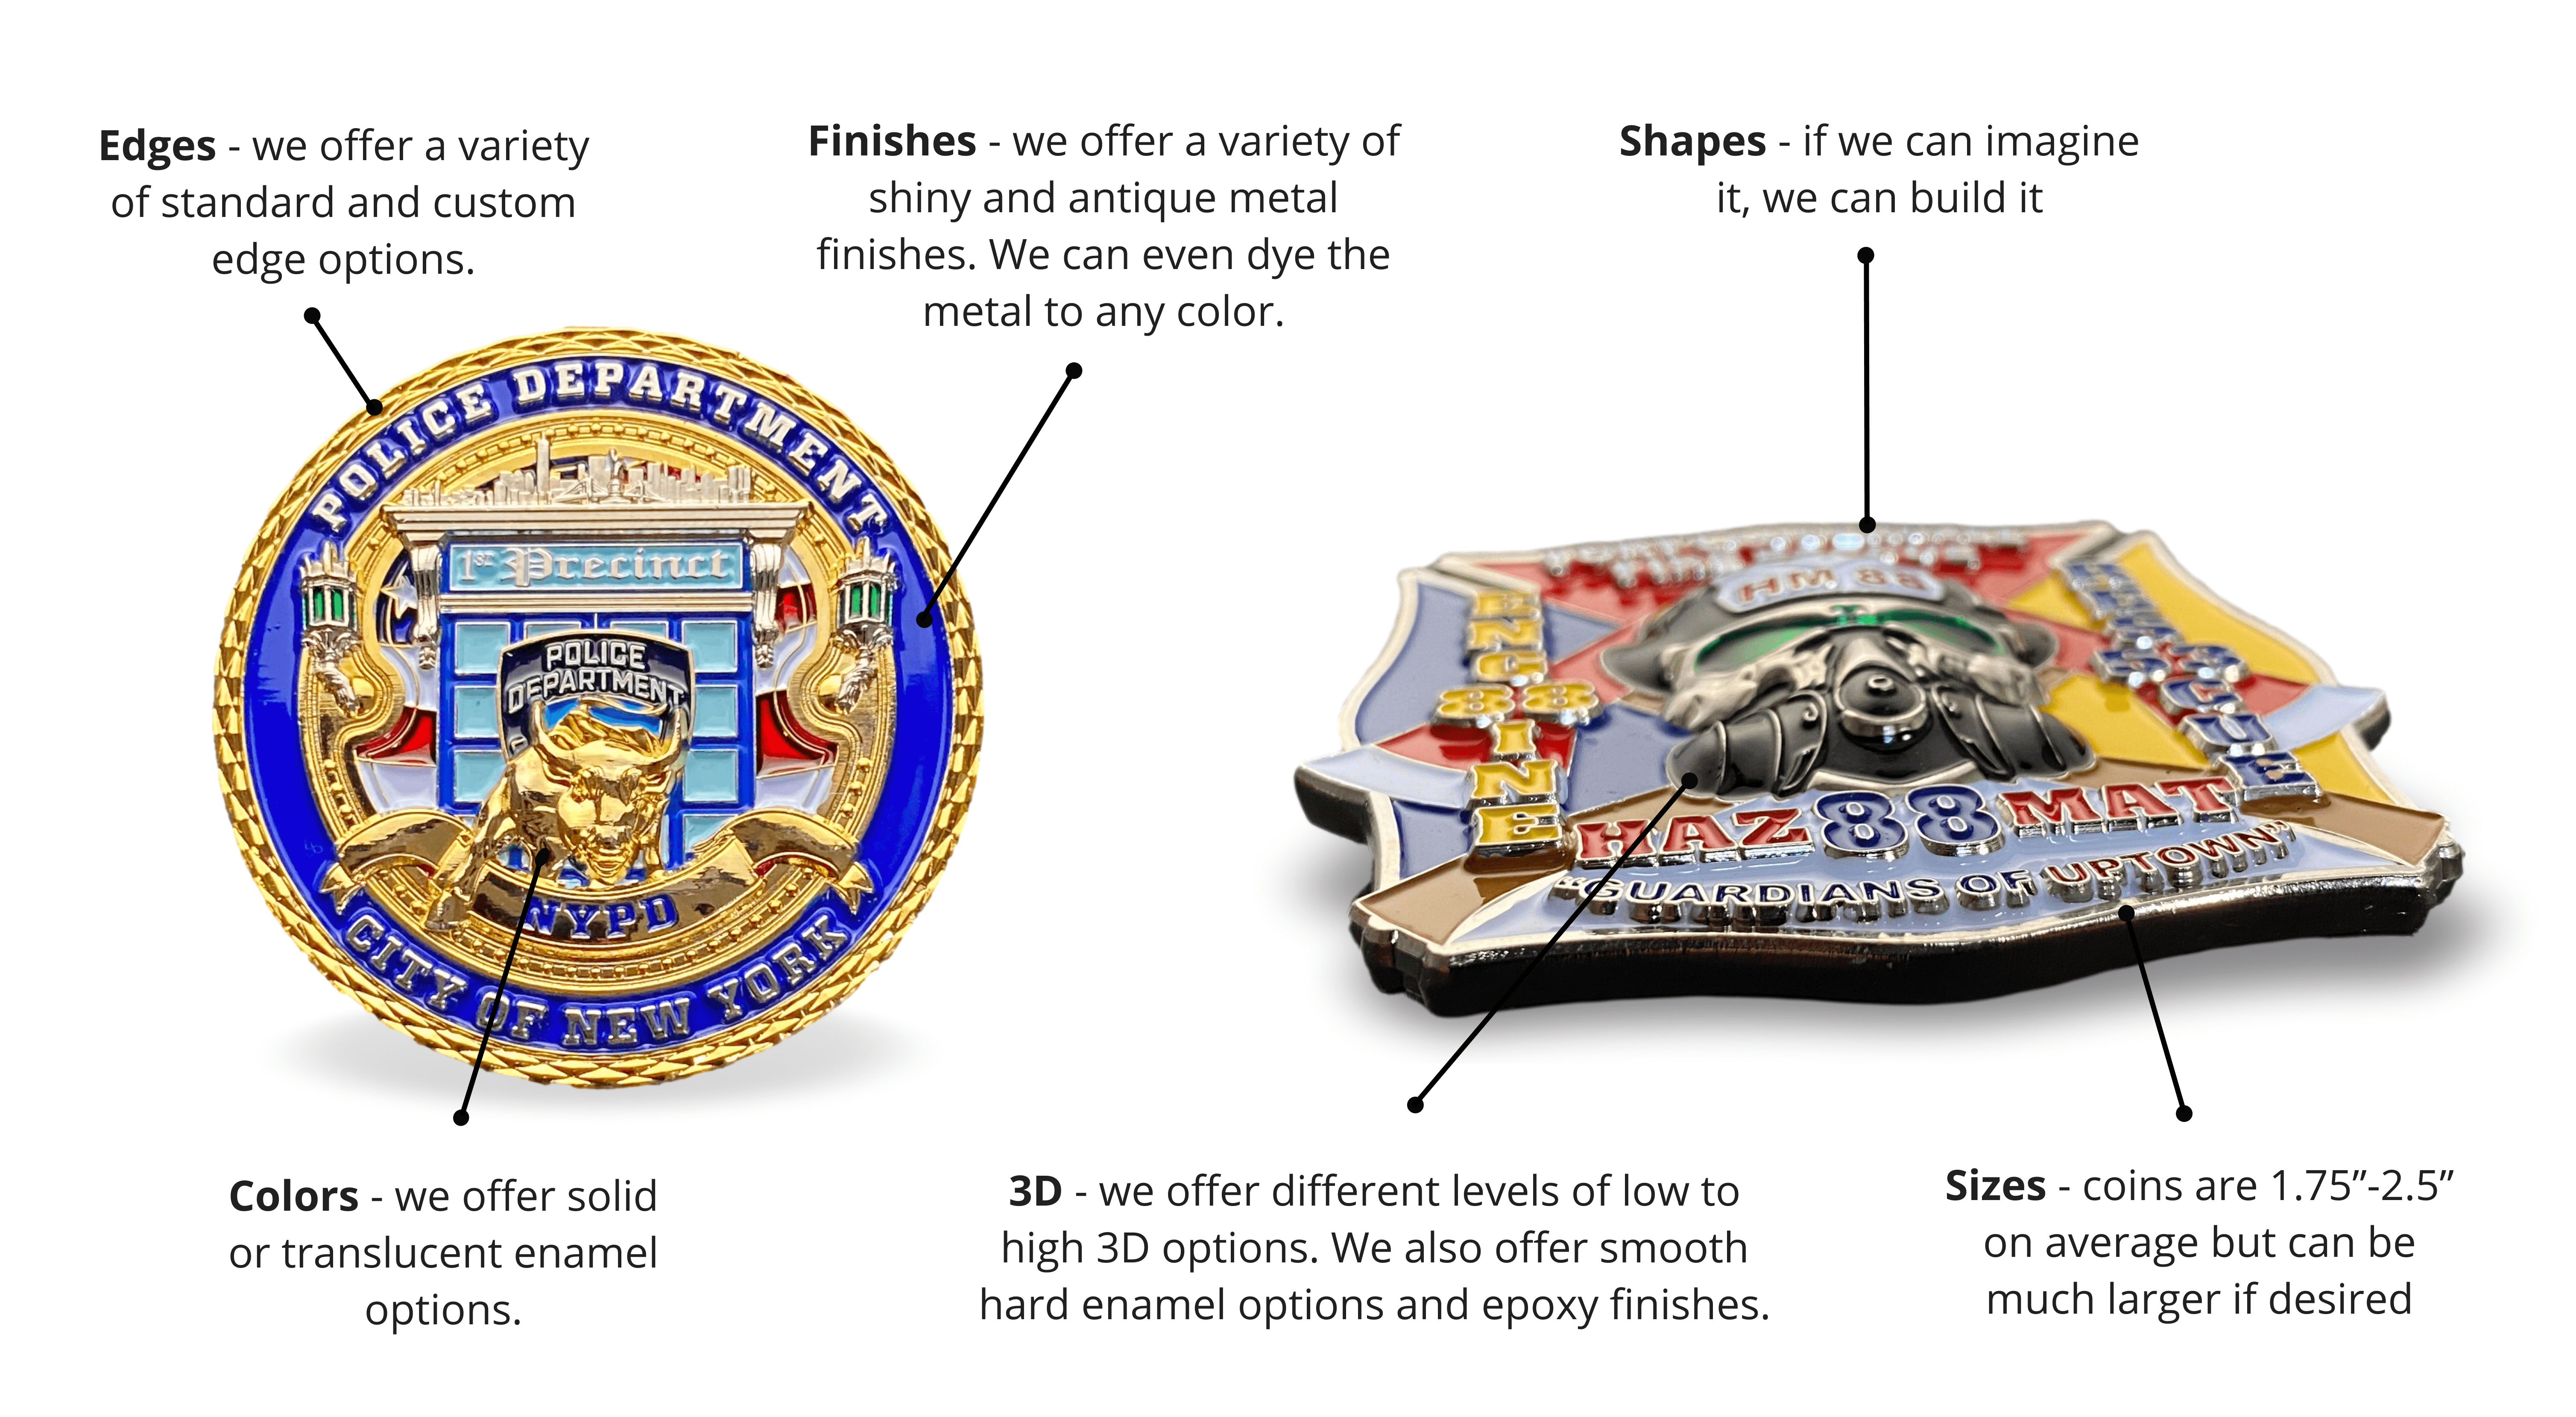 graphic of several features and options when considering which type of coin to get